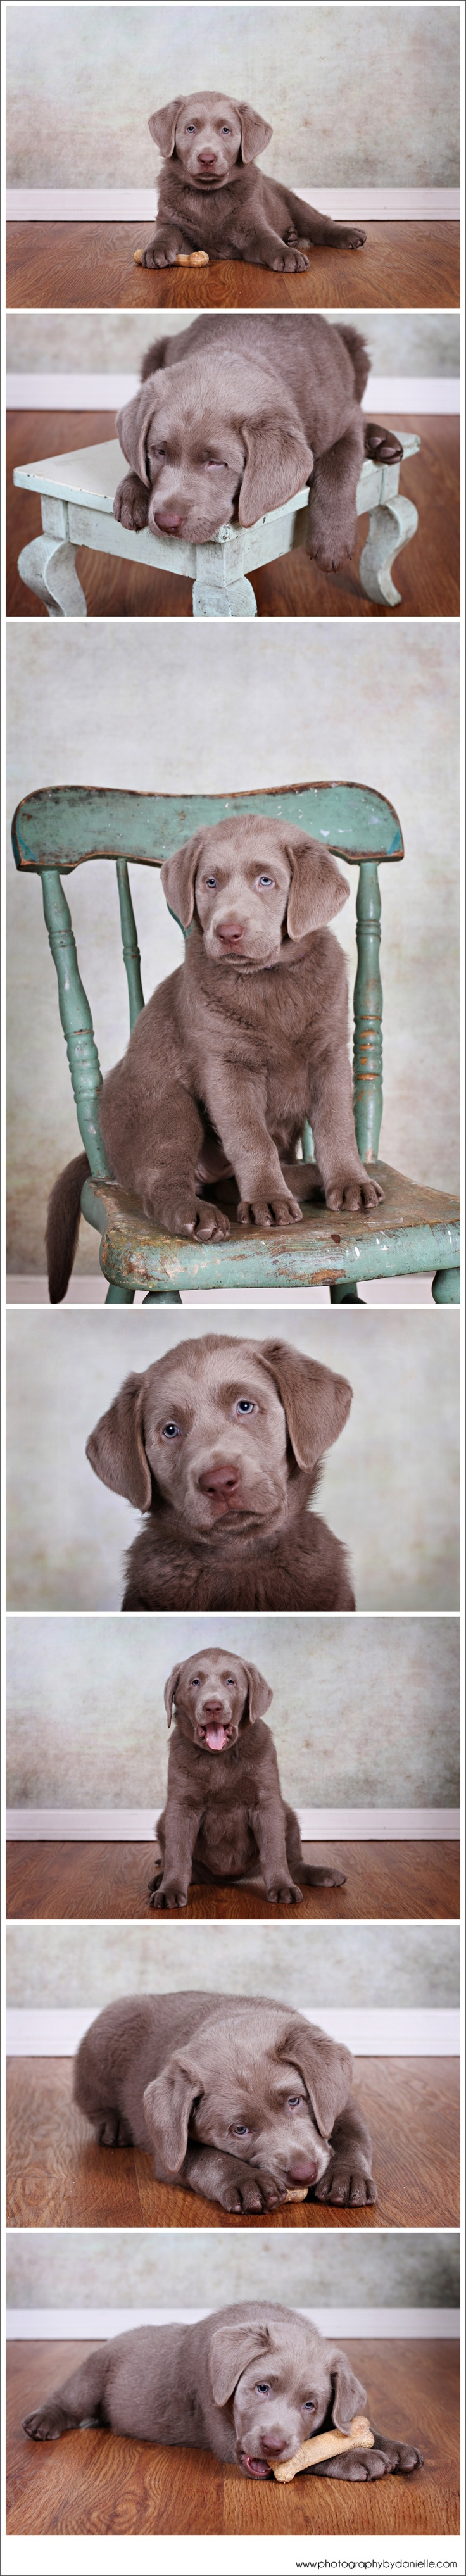 98 best Silver Lab Puppies images on Pinterest